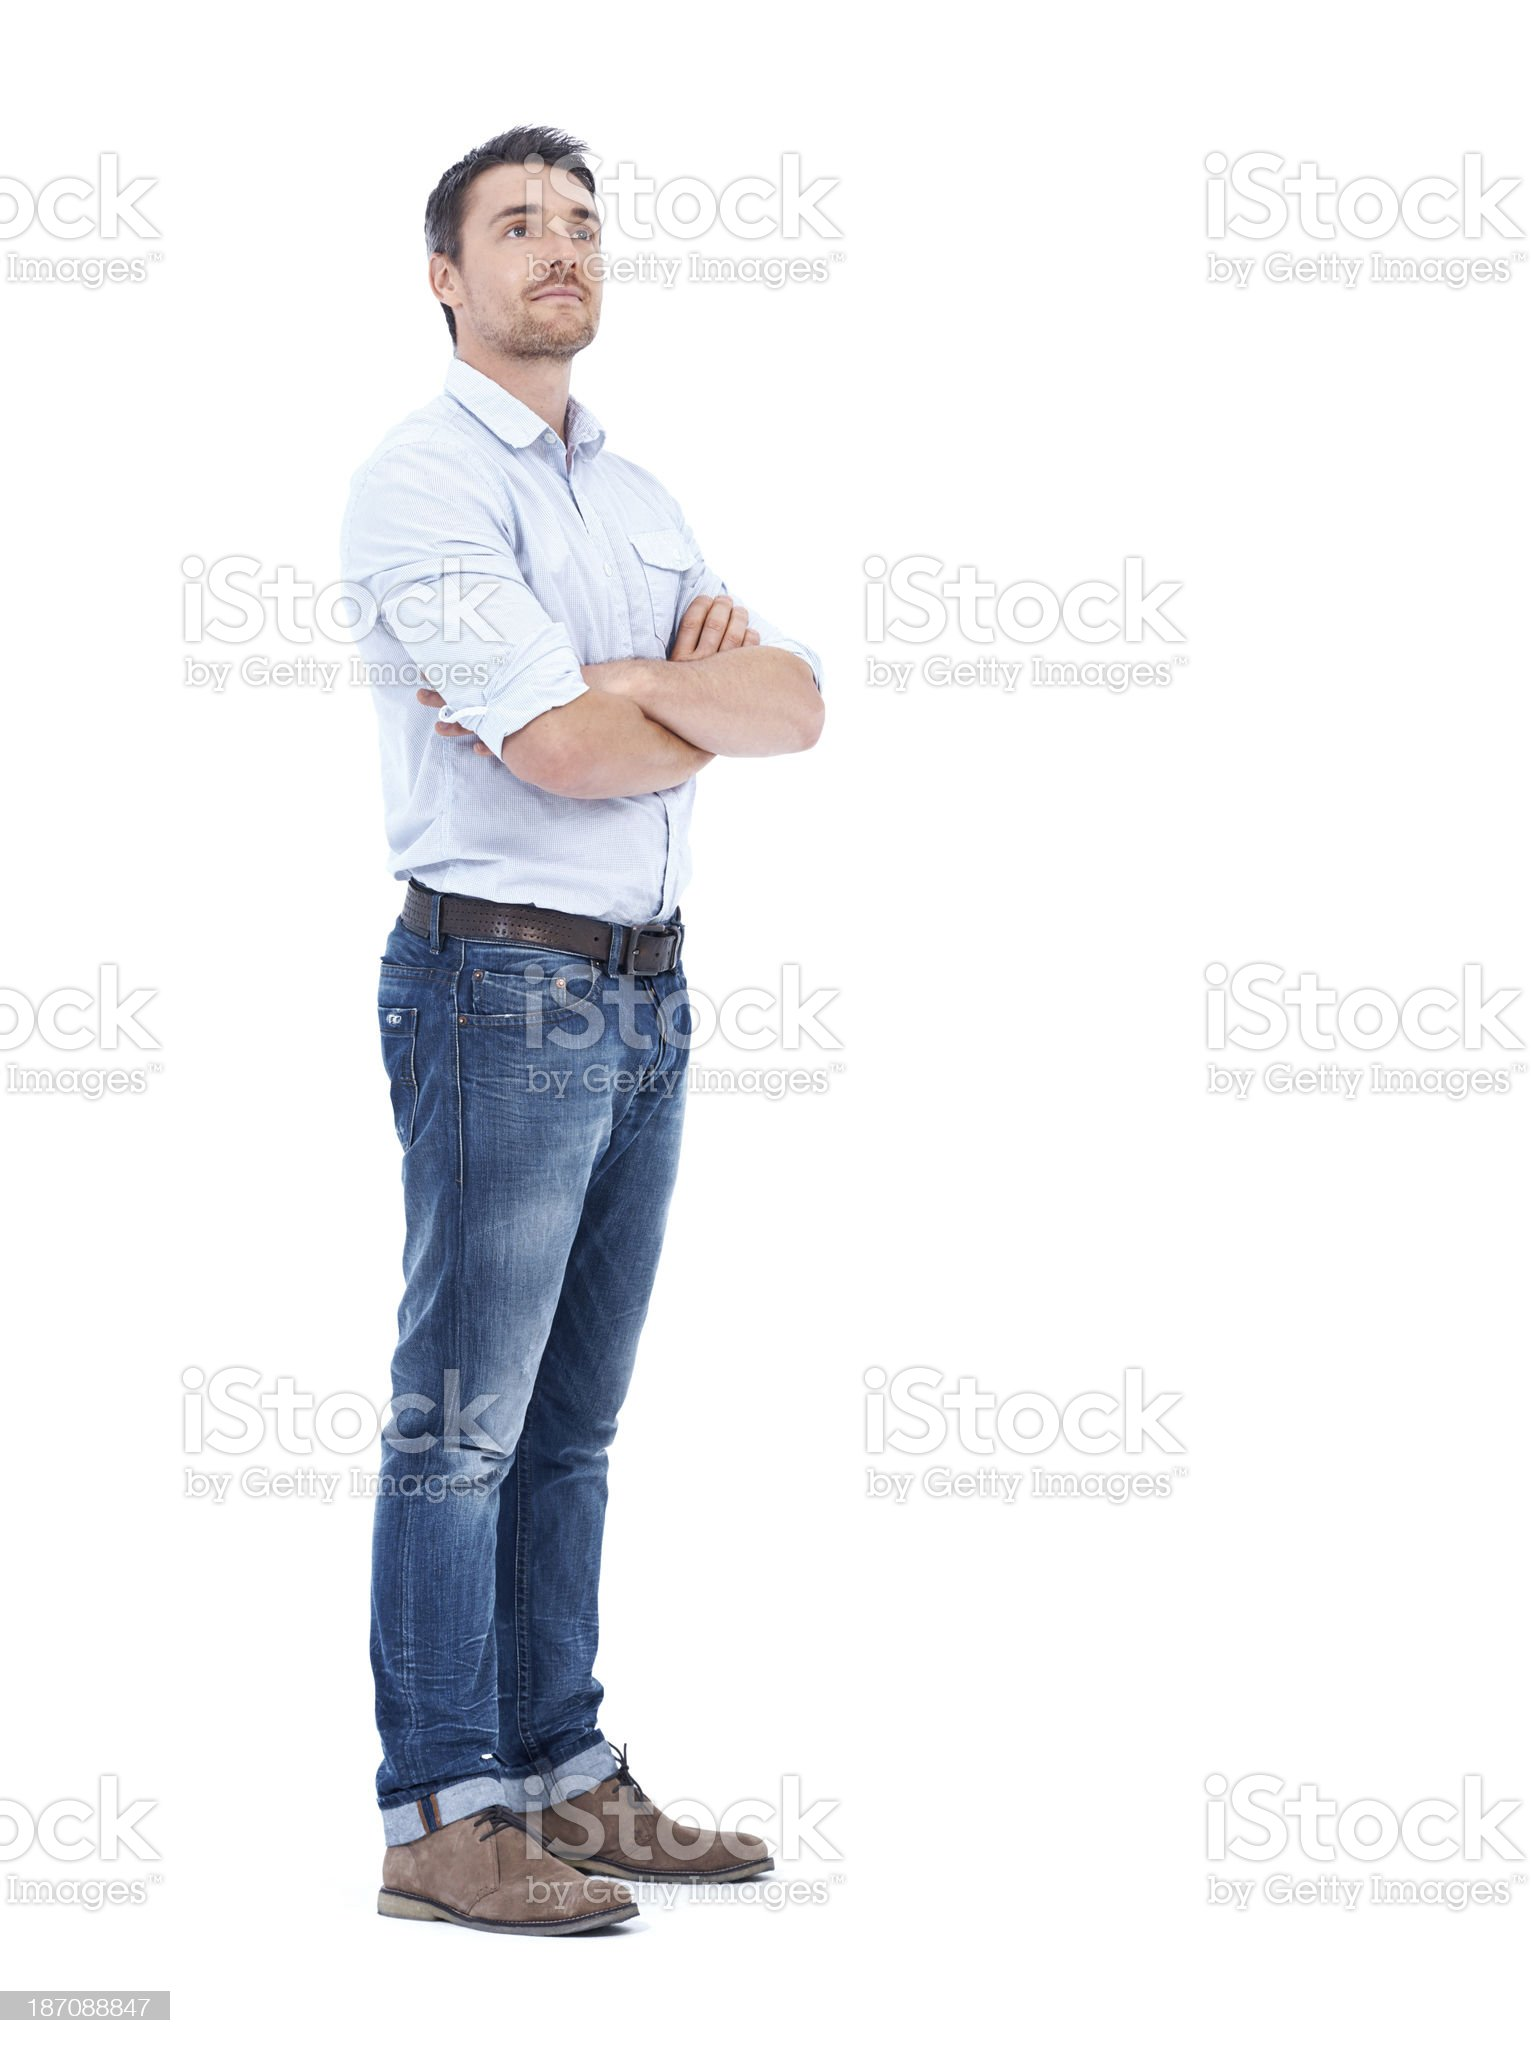 He has a vision for his career royalty-free stock photo